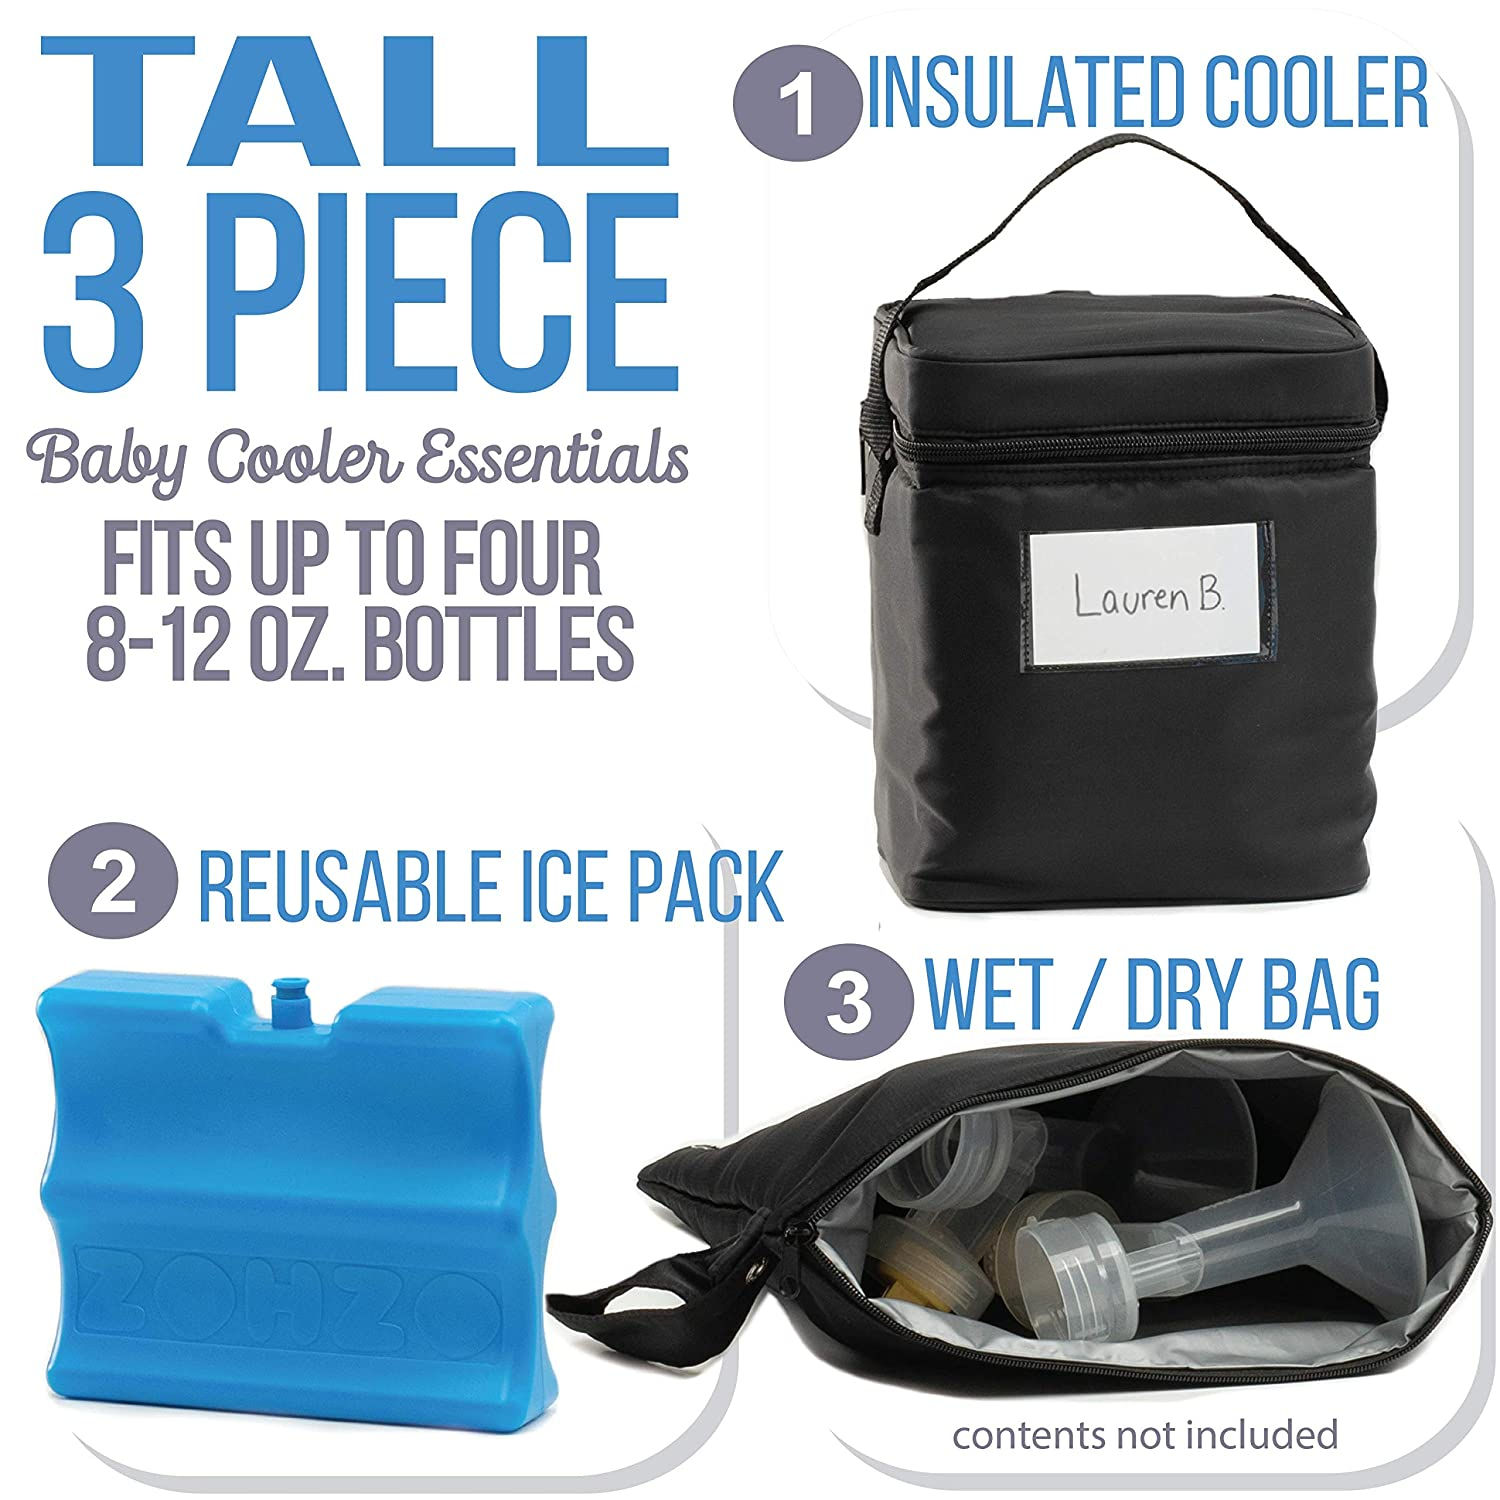 Zohzo Breastmilk Cooler Bag with Ice Pack Insulated Breast Milk Cooler with Accompanying Wet//Dry Bag Black